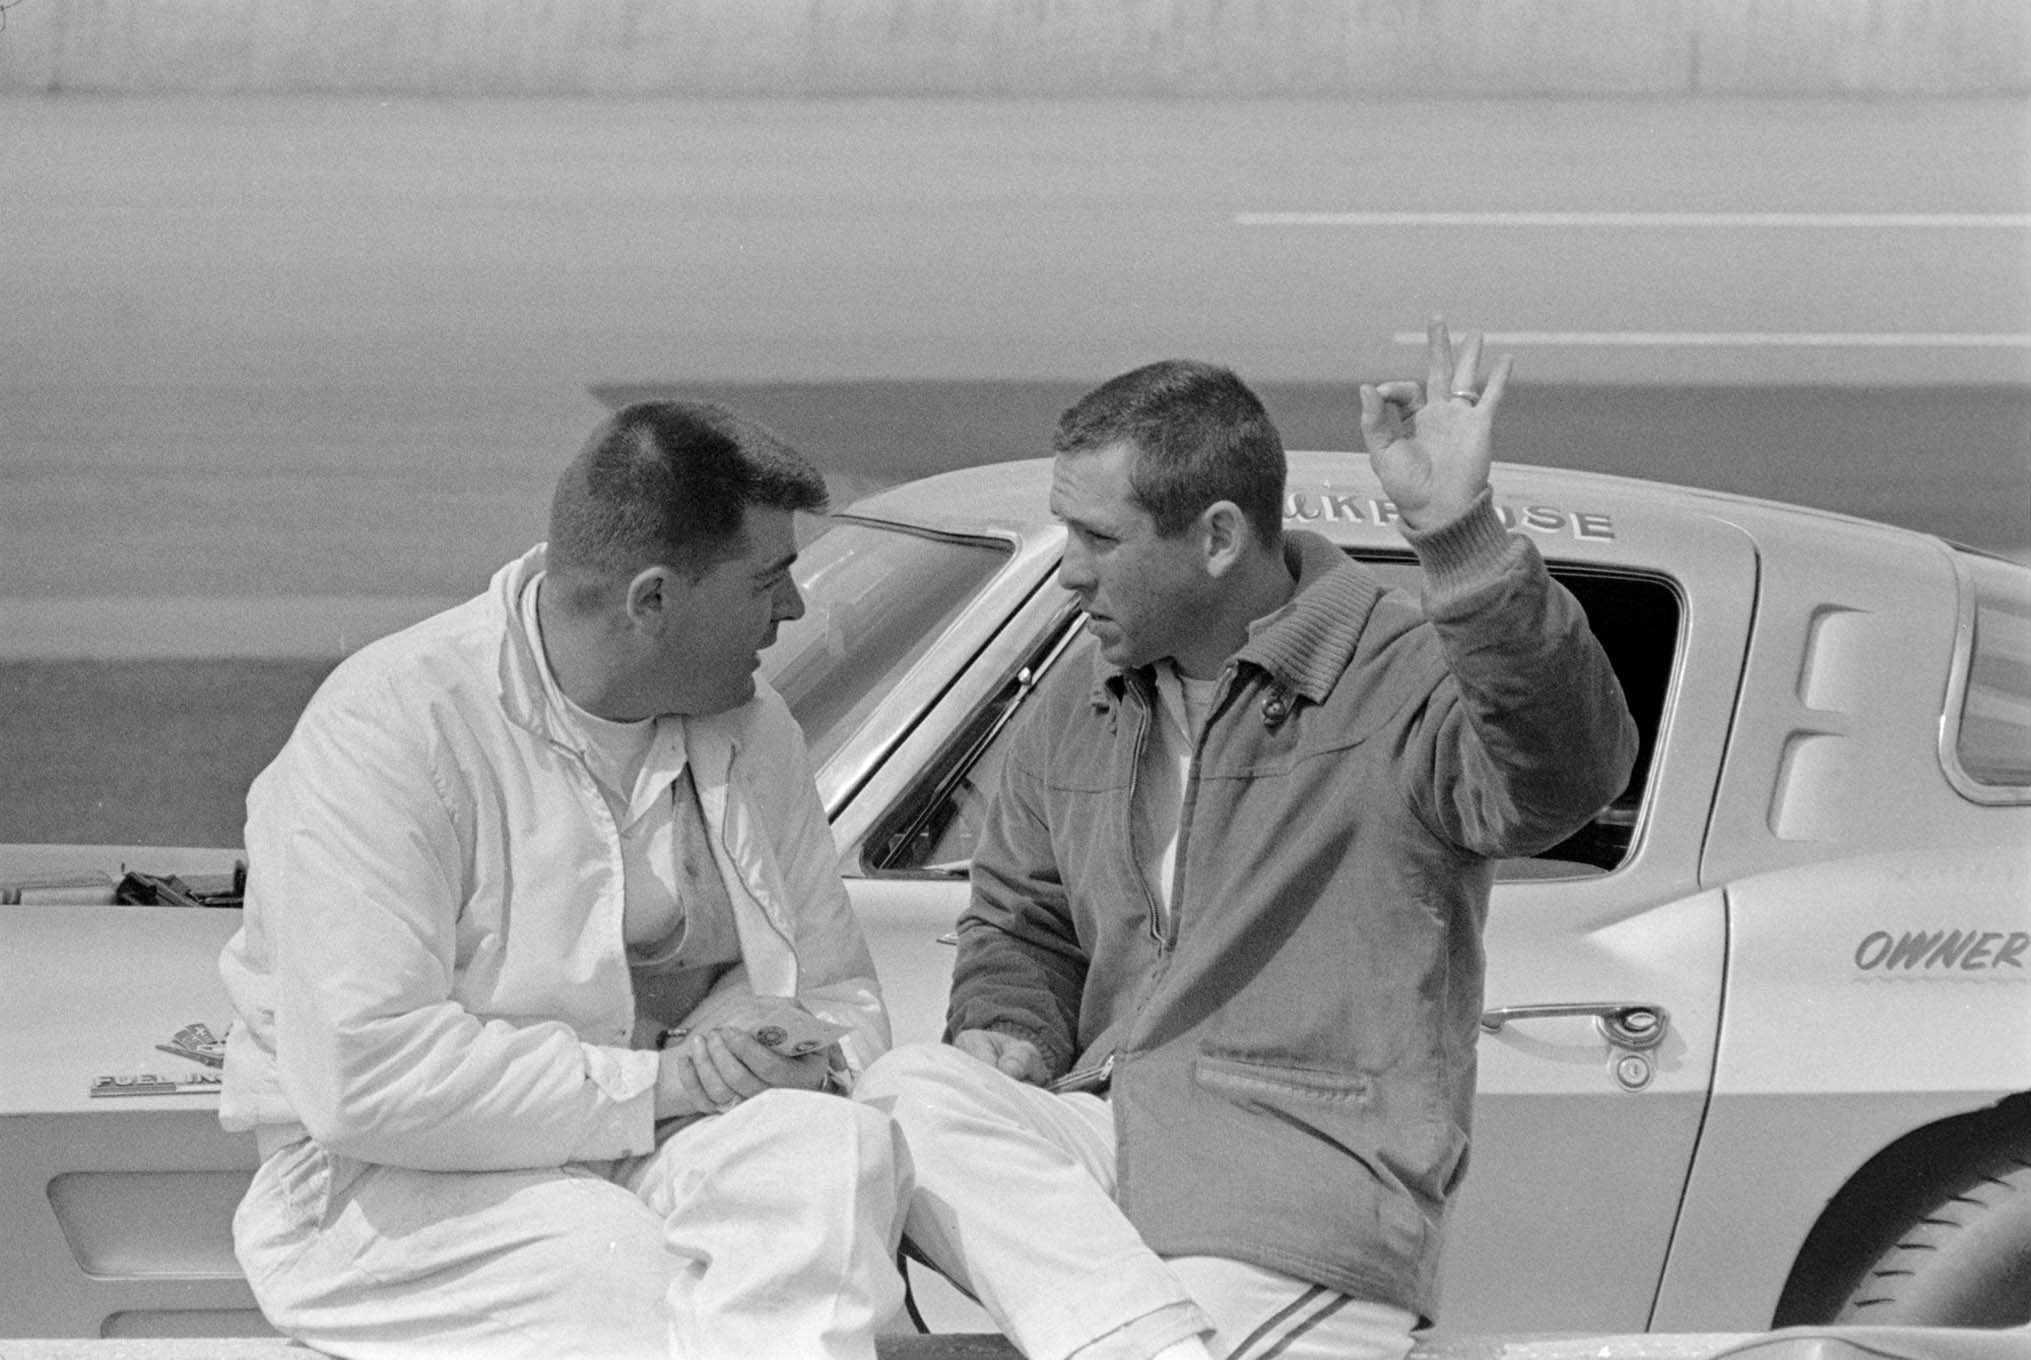 When it came time to race the big-block Sting Rays, Johnson said he wasn't going to drive the ill-handling machine, so Thompson had ex–Shelby Cobra road racer Billy Krause drive Johnson's car. Thompson is shown here (left) next to Krause (right) in front of what we believe to be one of the small-block-equipped Corvettes during practice.